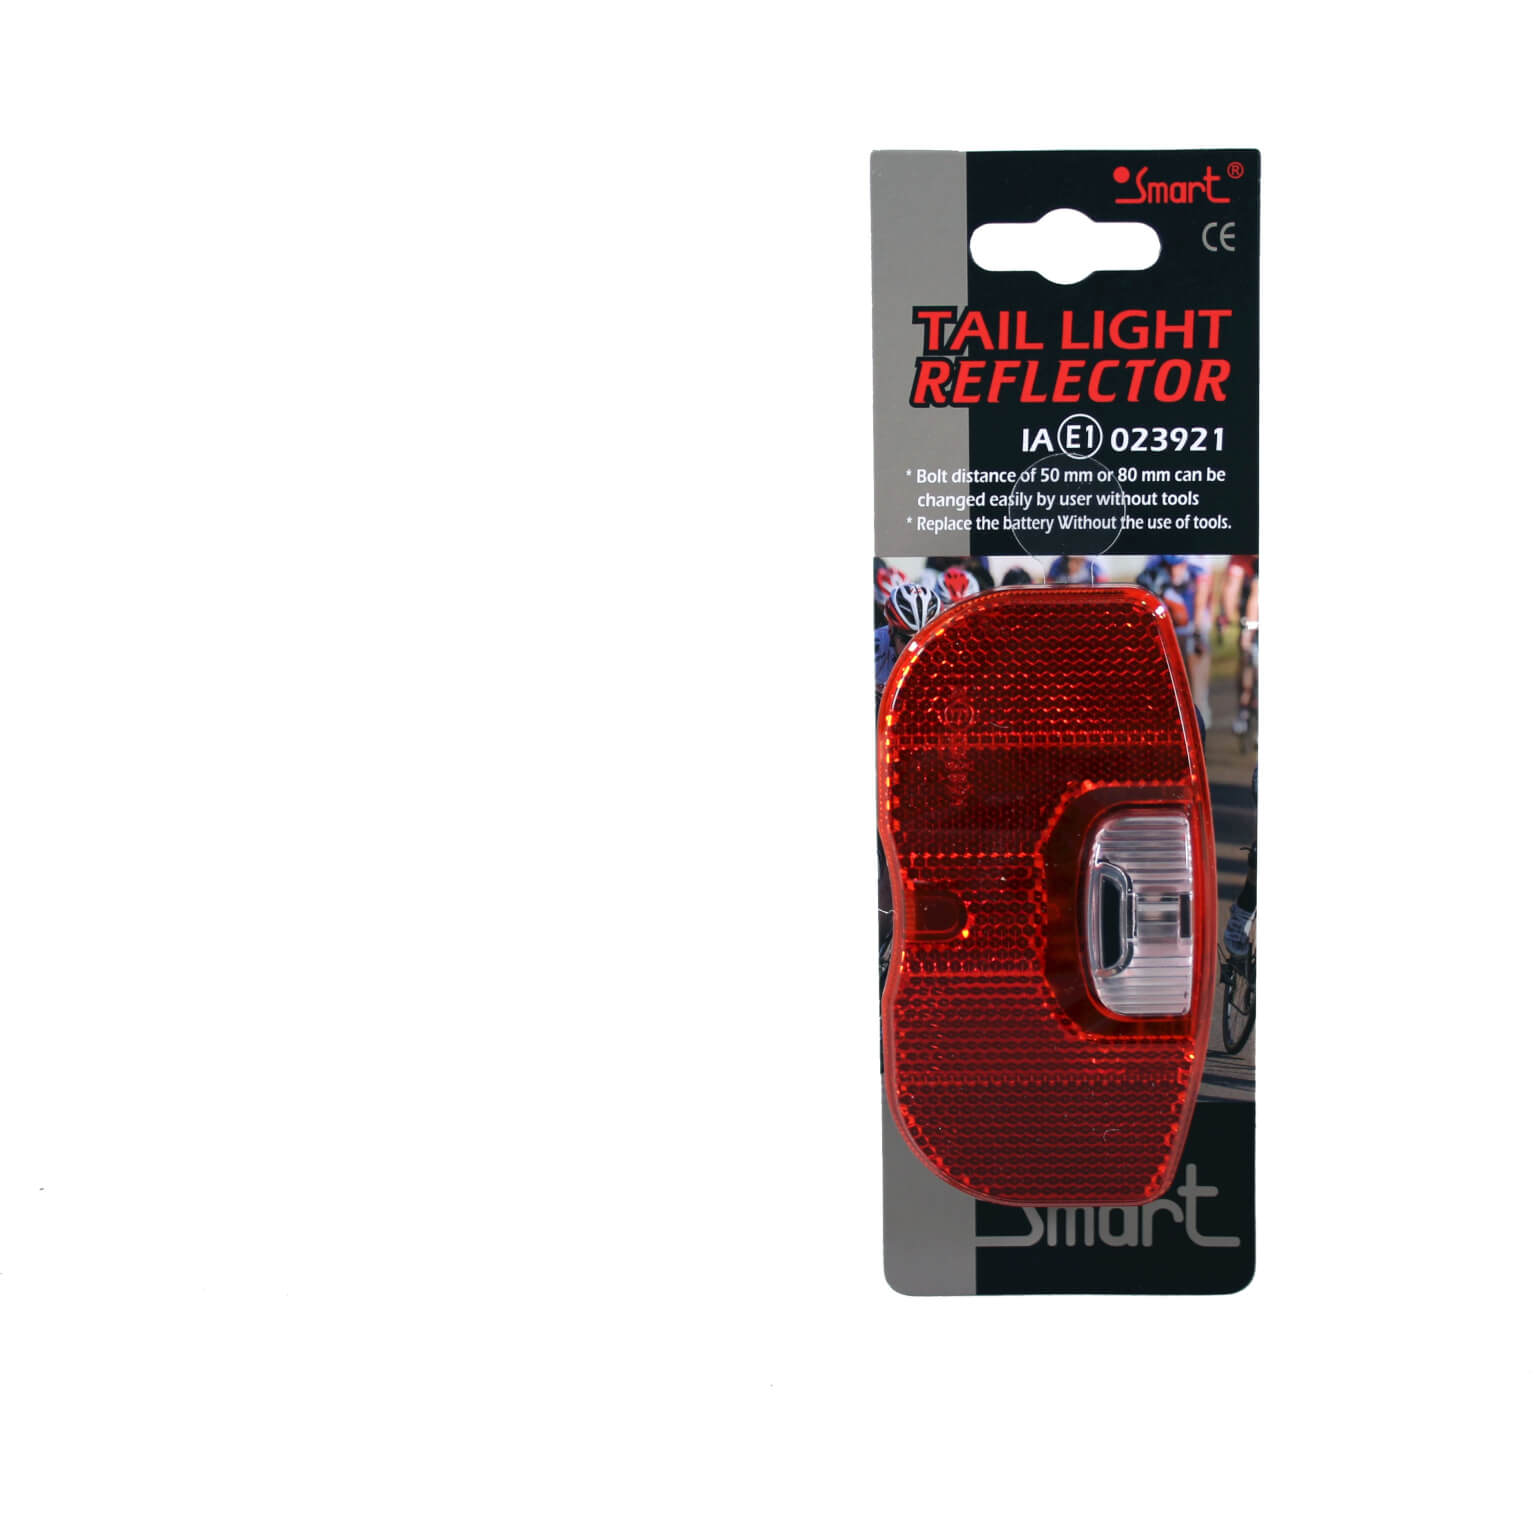 Smart Rear Light Plus LED TL280R 2xAAA 80mm Assembly